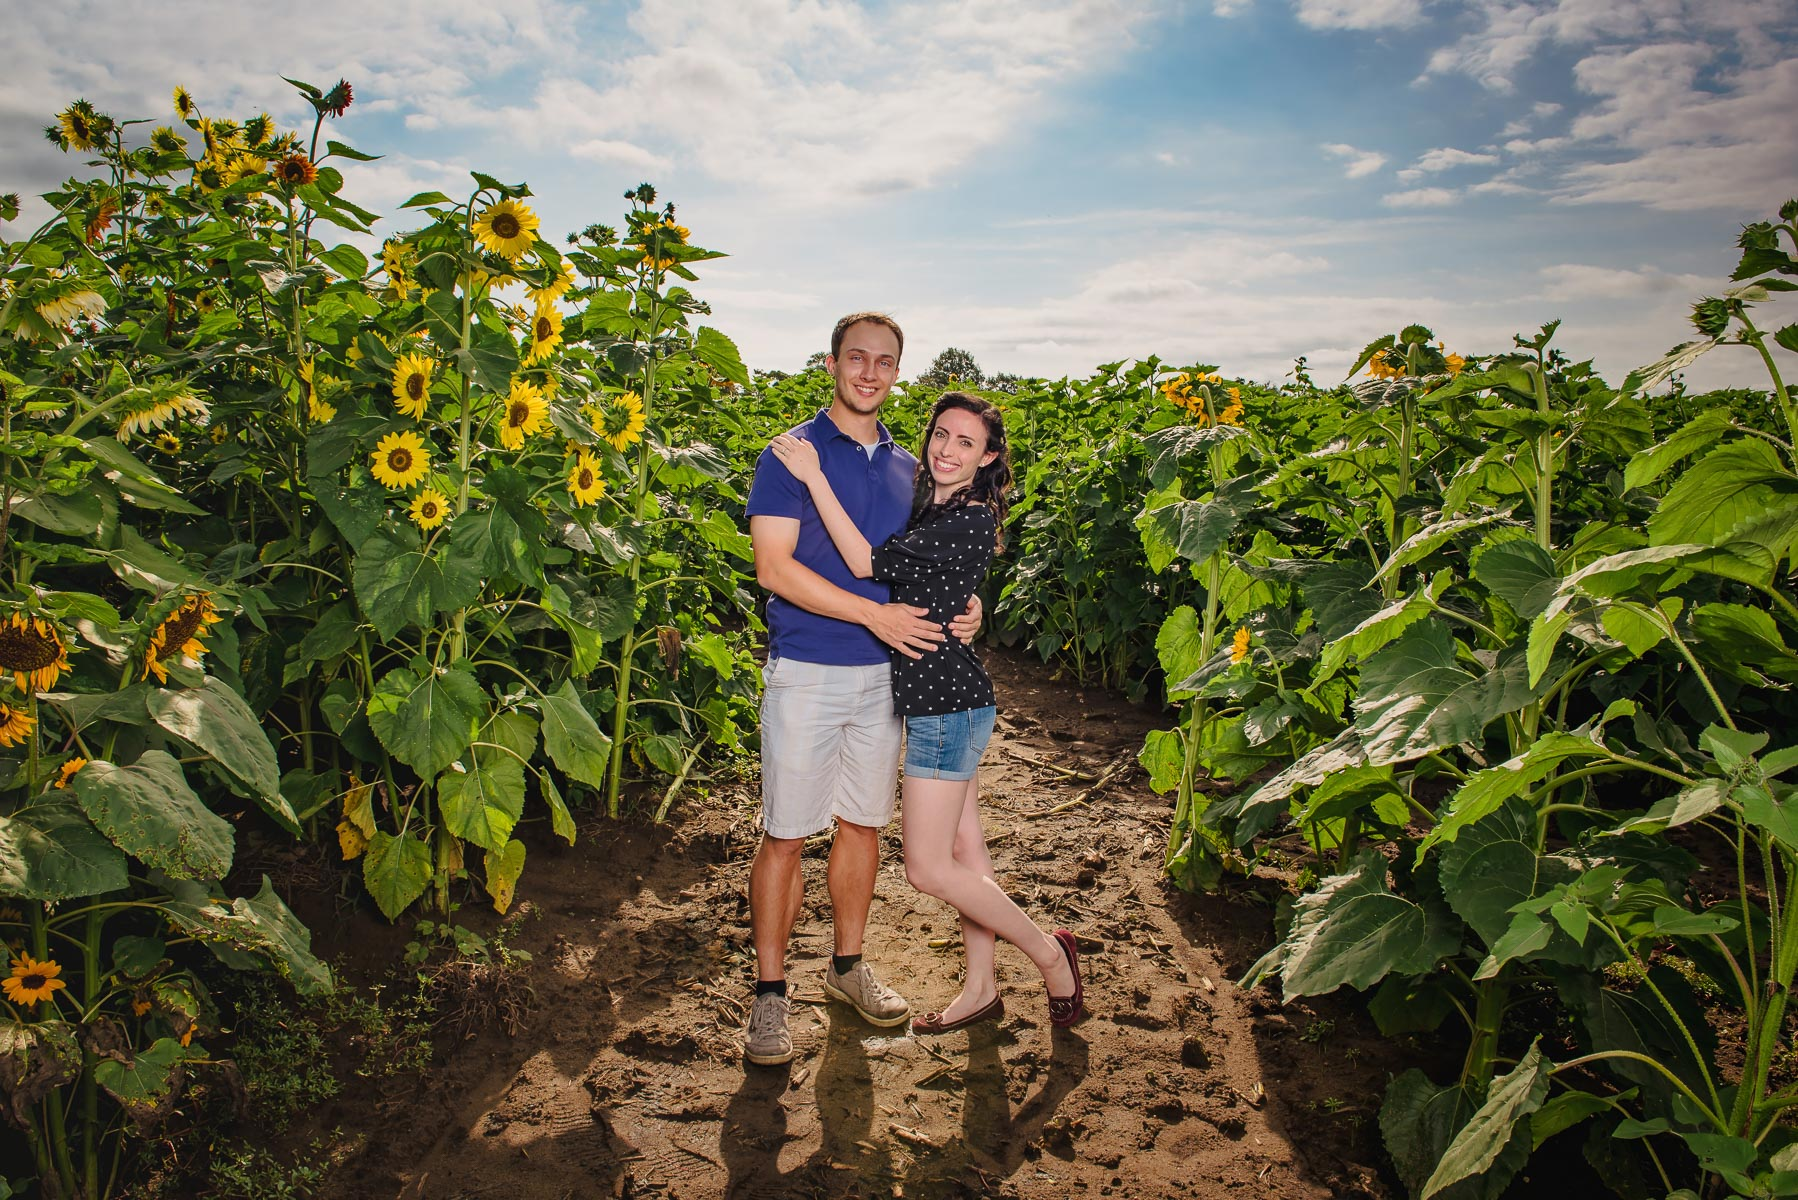 Sunflower farm engagement shoot _ Johnson's Locust Hall Farm _ Jobstown NJ-5.jpg